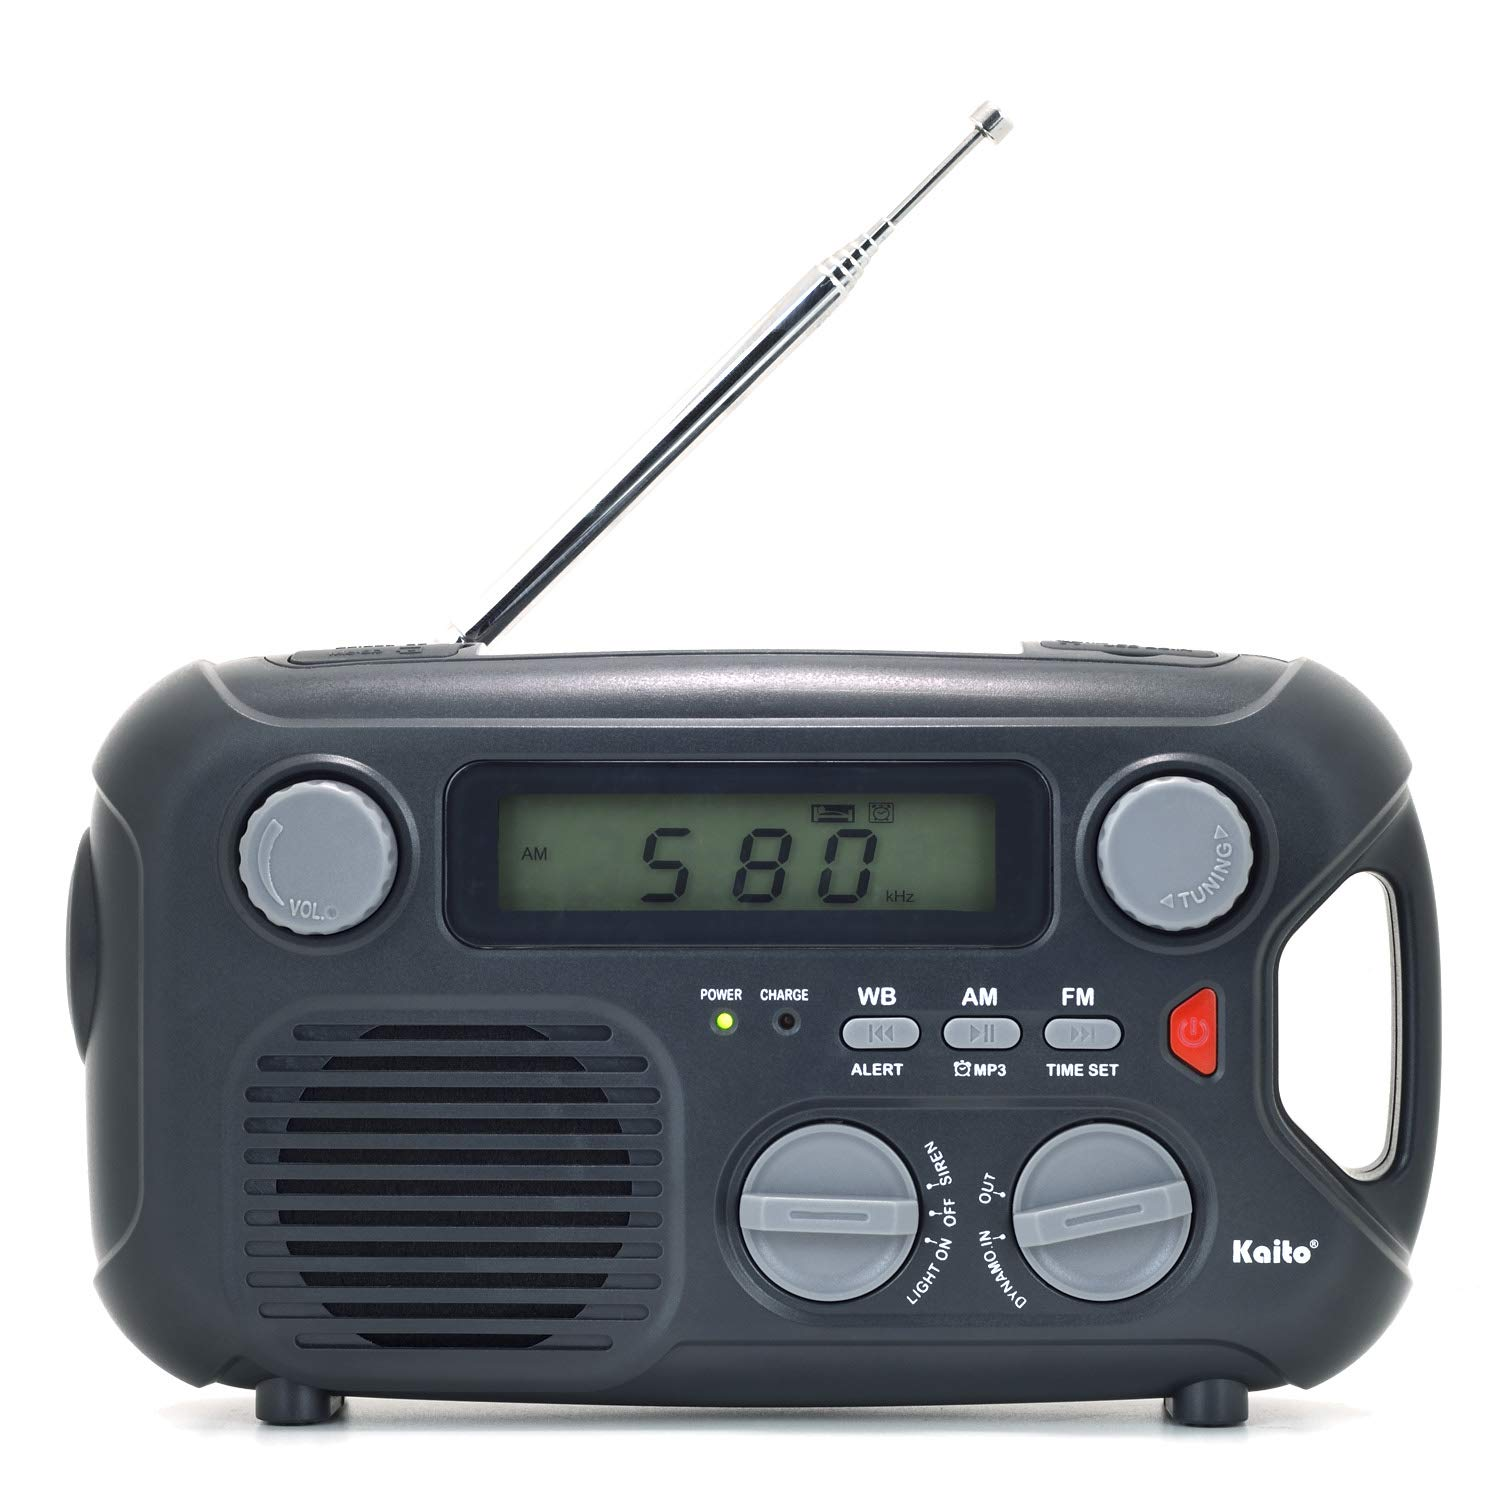 Kaito Emergency Radio KA580 Digital Solar Dynamo Crank Wind Up AM/FM & NOAA Weather Radio Receiver with Real-time Alert, MP3 Player & Phone Charger (Black)